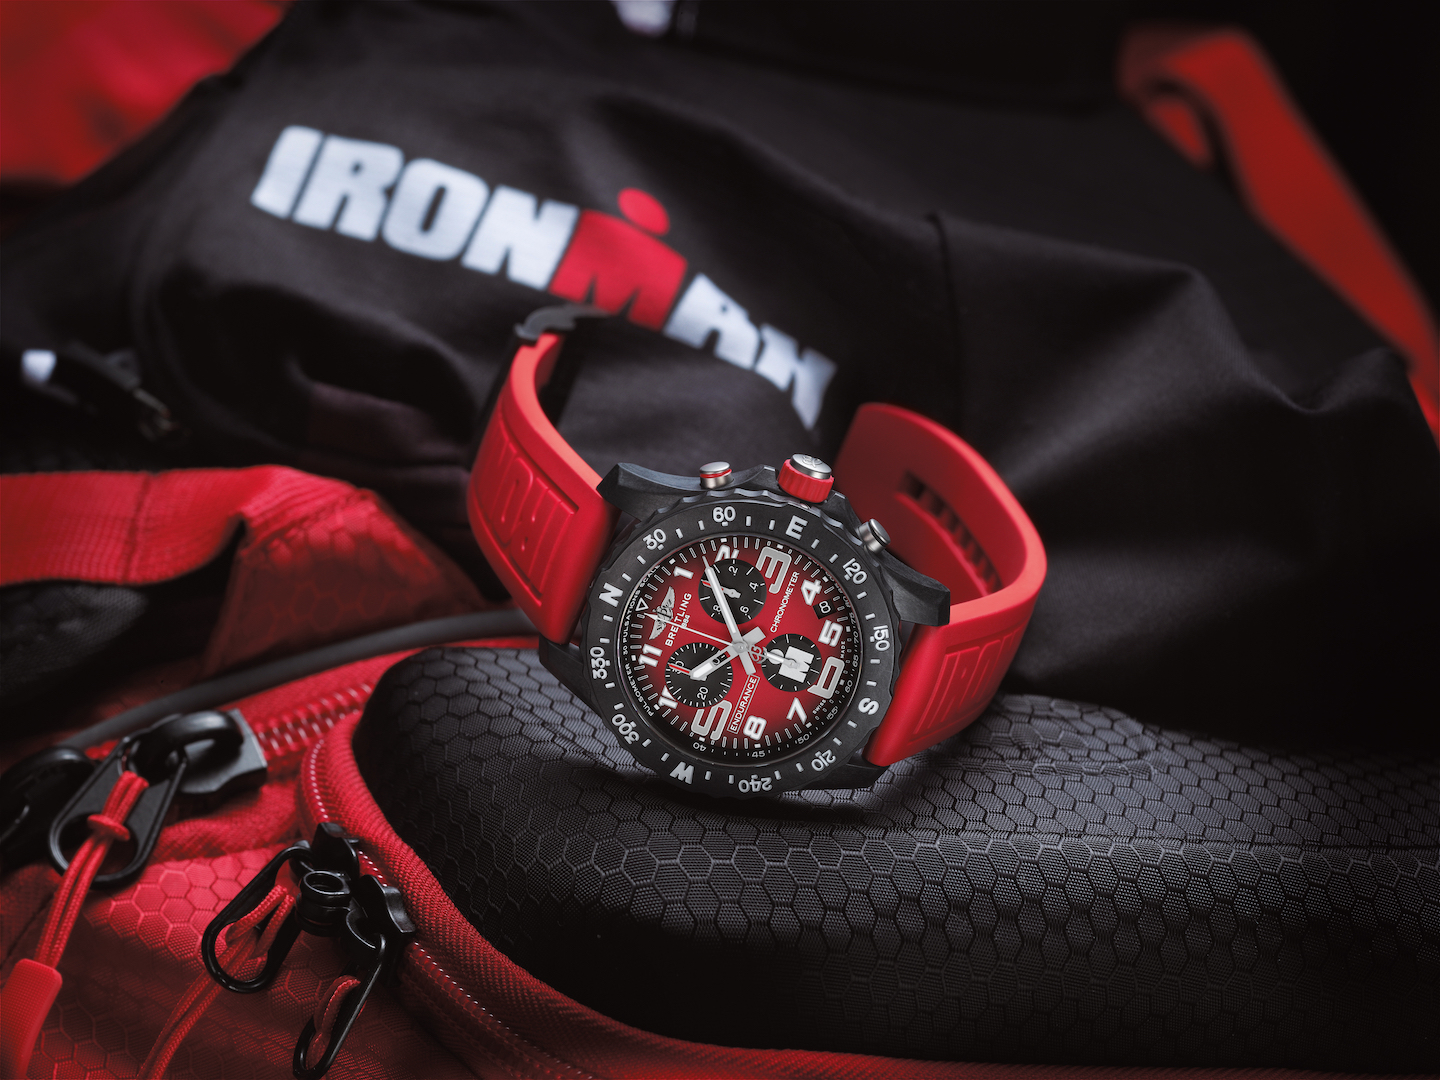 Ironman and Breitling partner to launch new watches